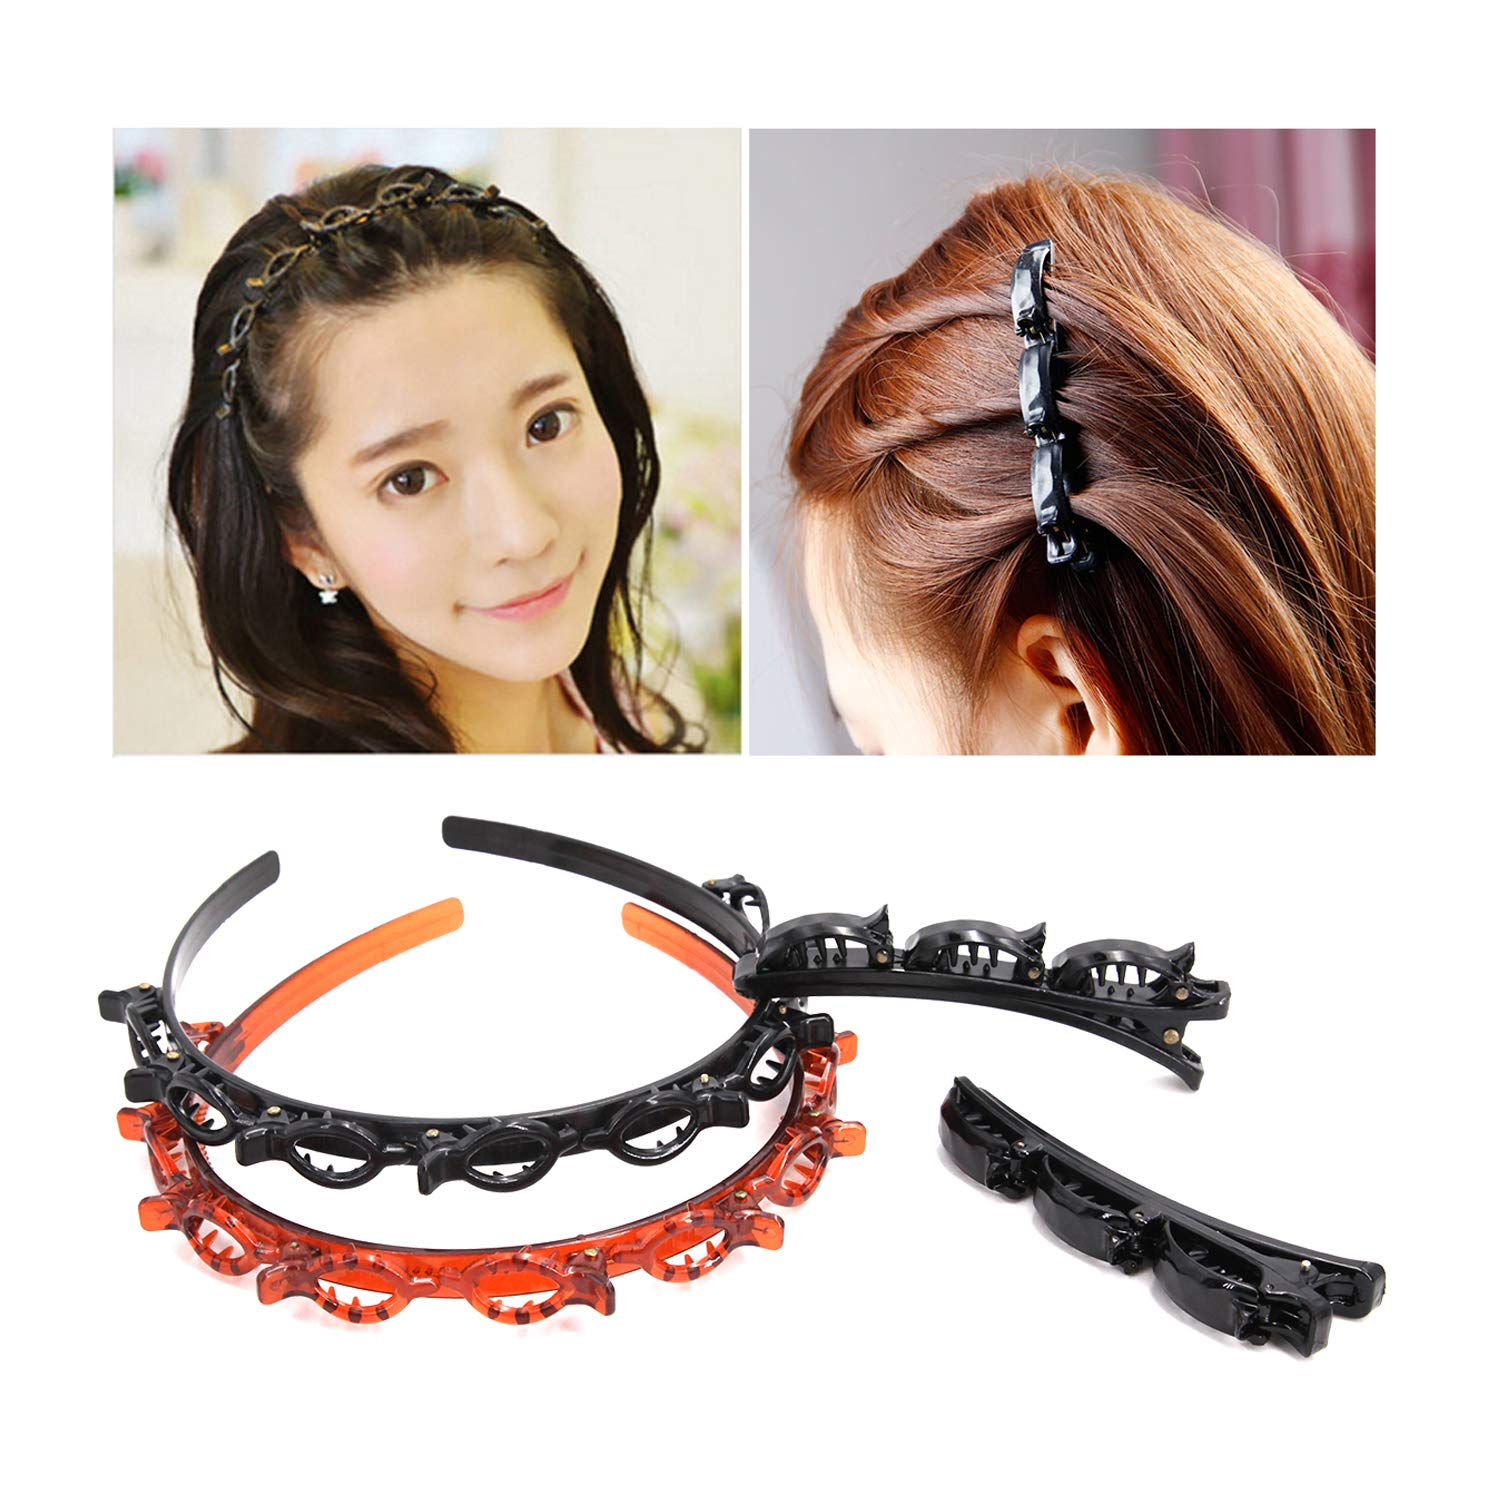 1pcs Plastic Styling Tool Hair Braider Clips Claws Clamps Grips Hair Accessories